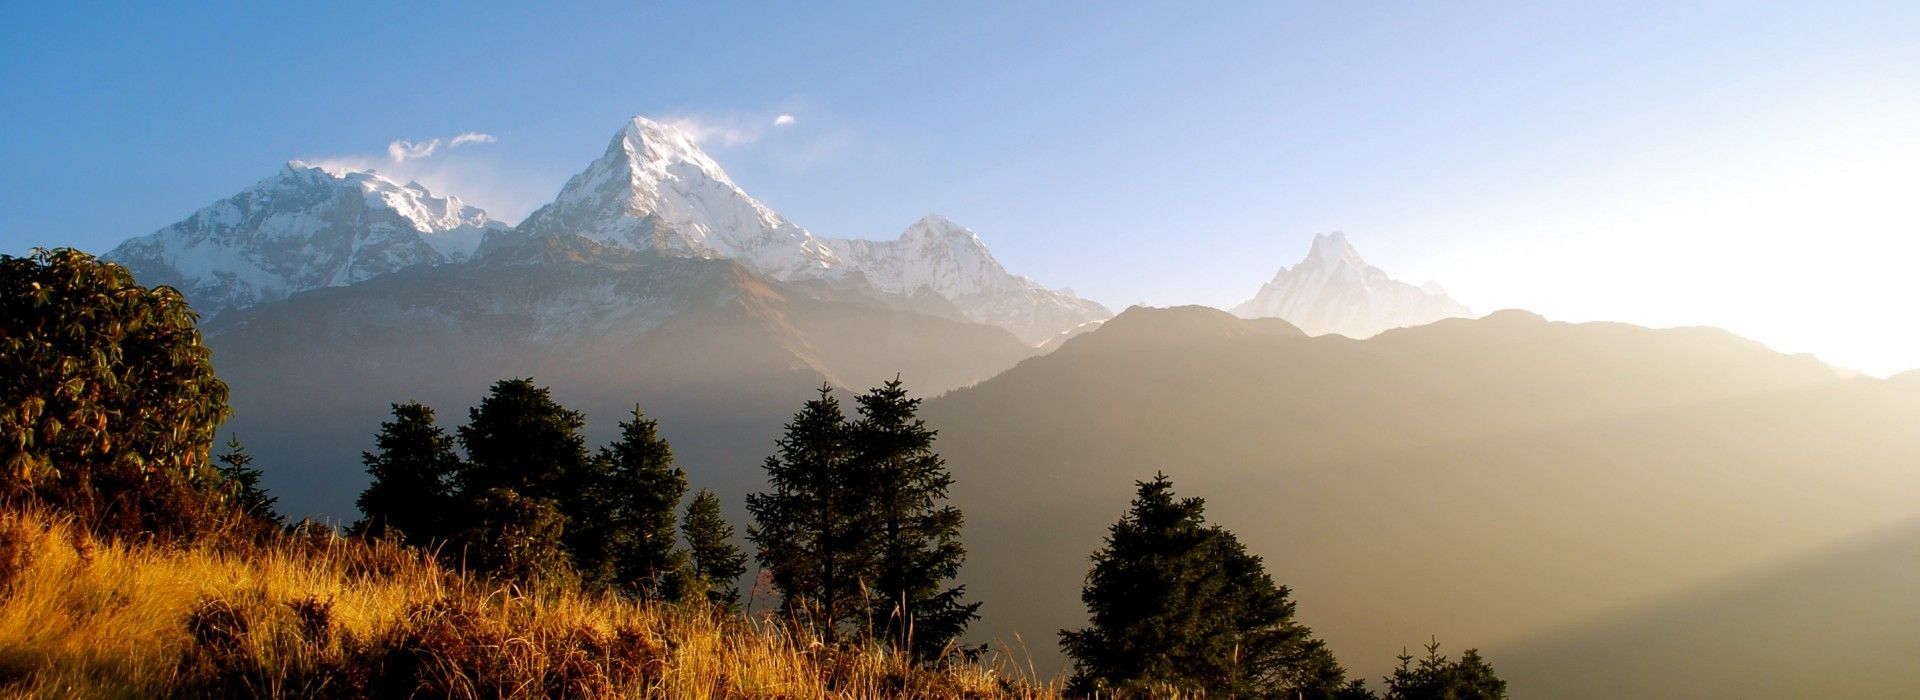 Sightseeing, attractions, culture and history Tours in Everest Base Camp trek